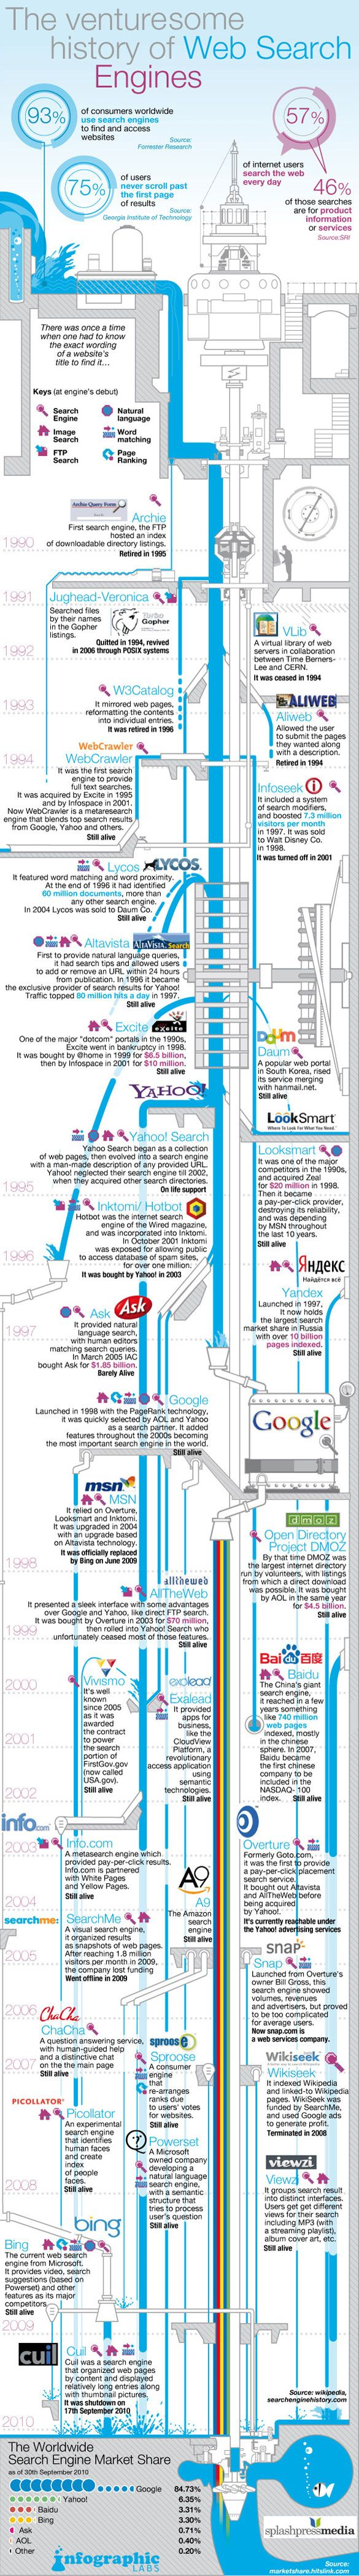 Search Engine Facts: Full Historical TimelineHistory Infographic, Digital Marketing, Social Media, Search Infographic, Search Engineering Optimism, Socialmedia, Web Search, Engineering Infographic, Engineering History